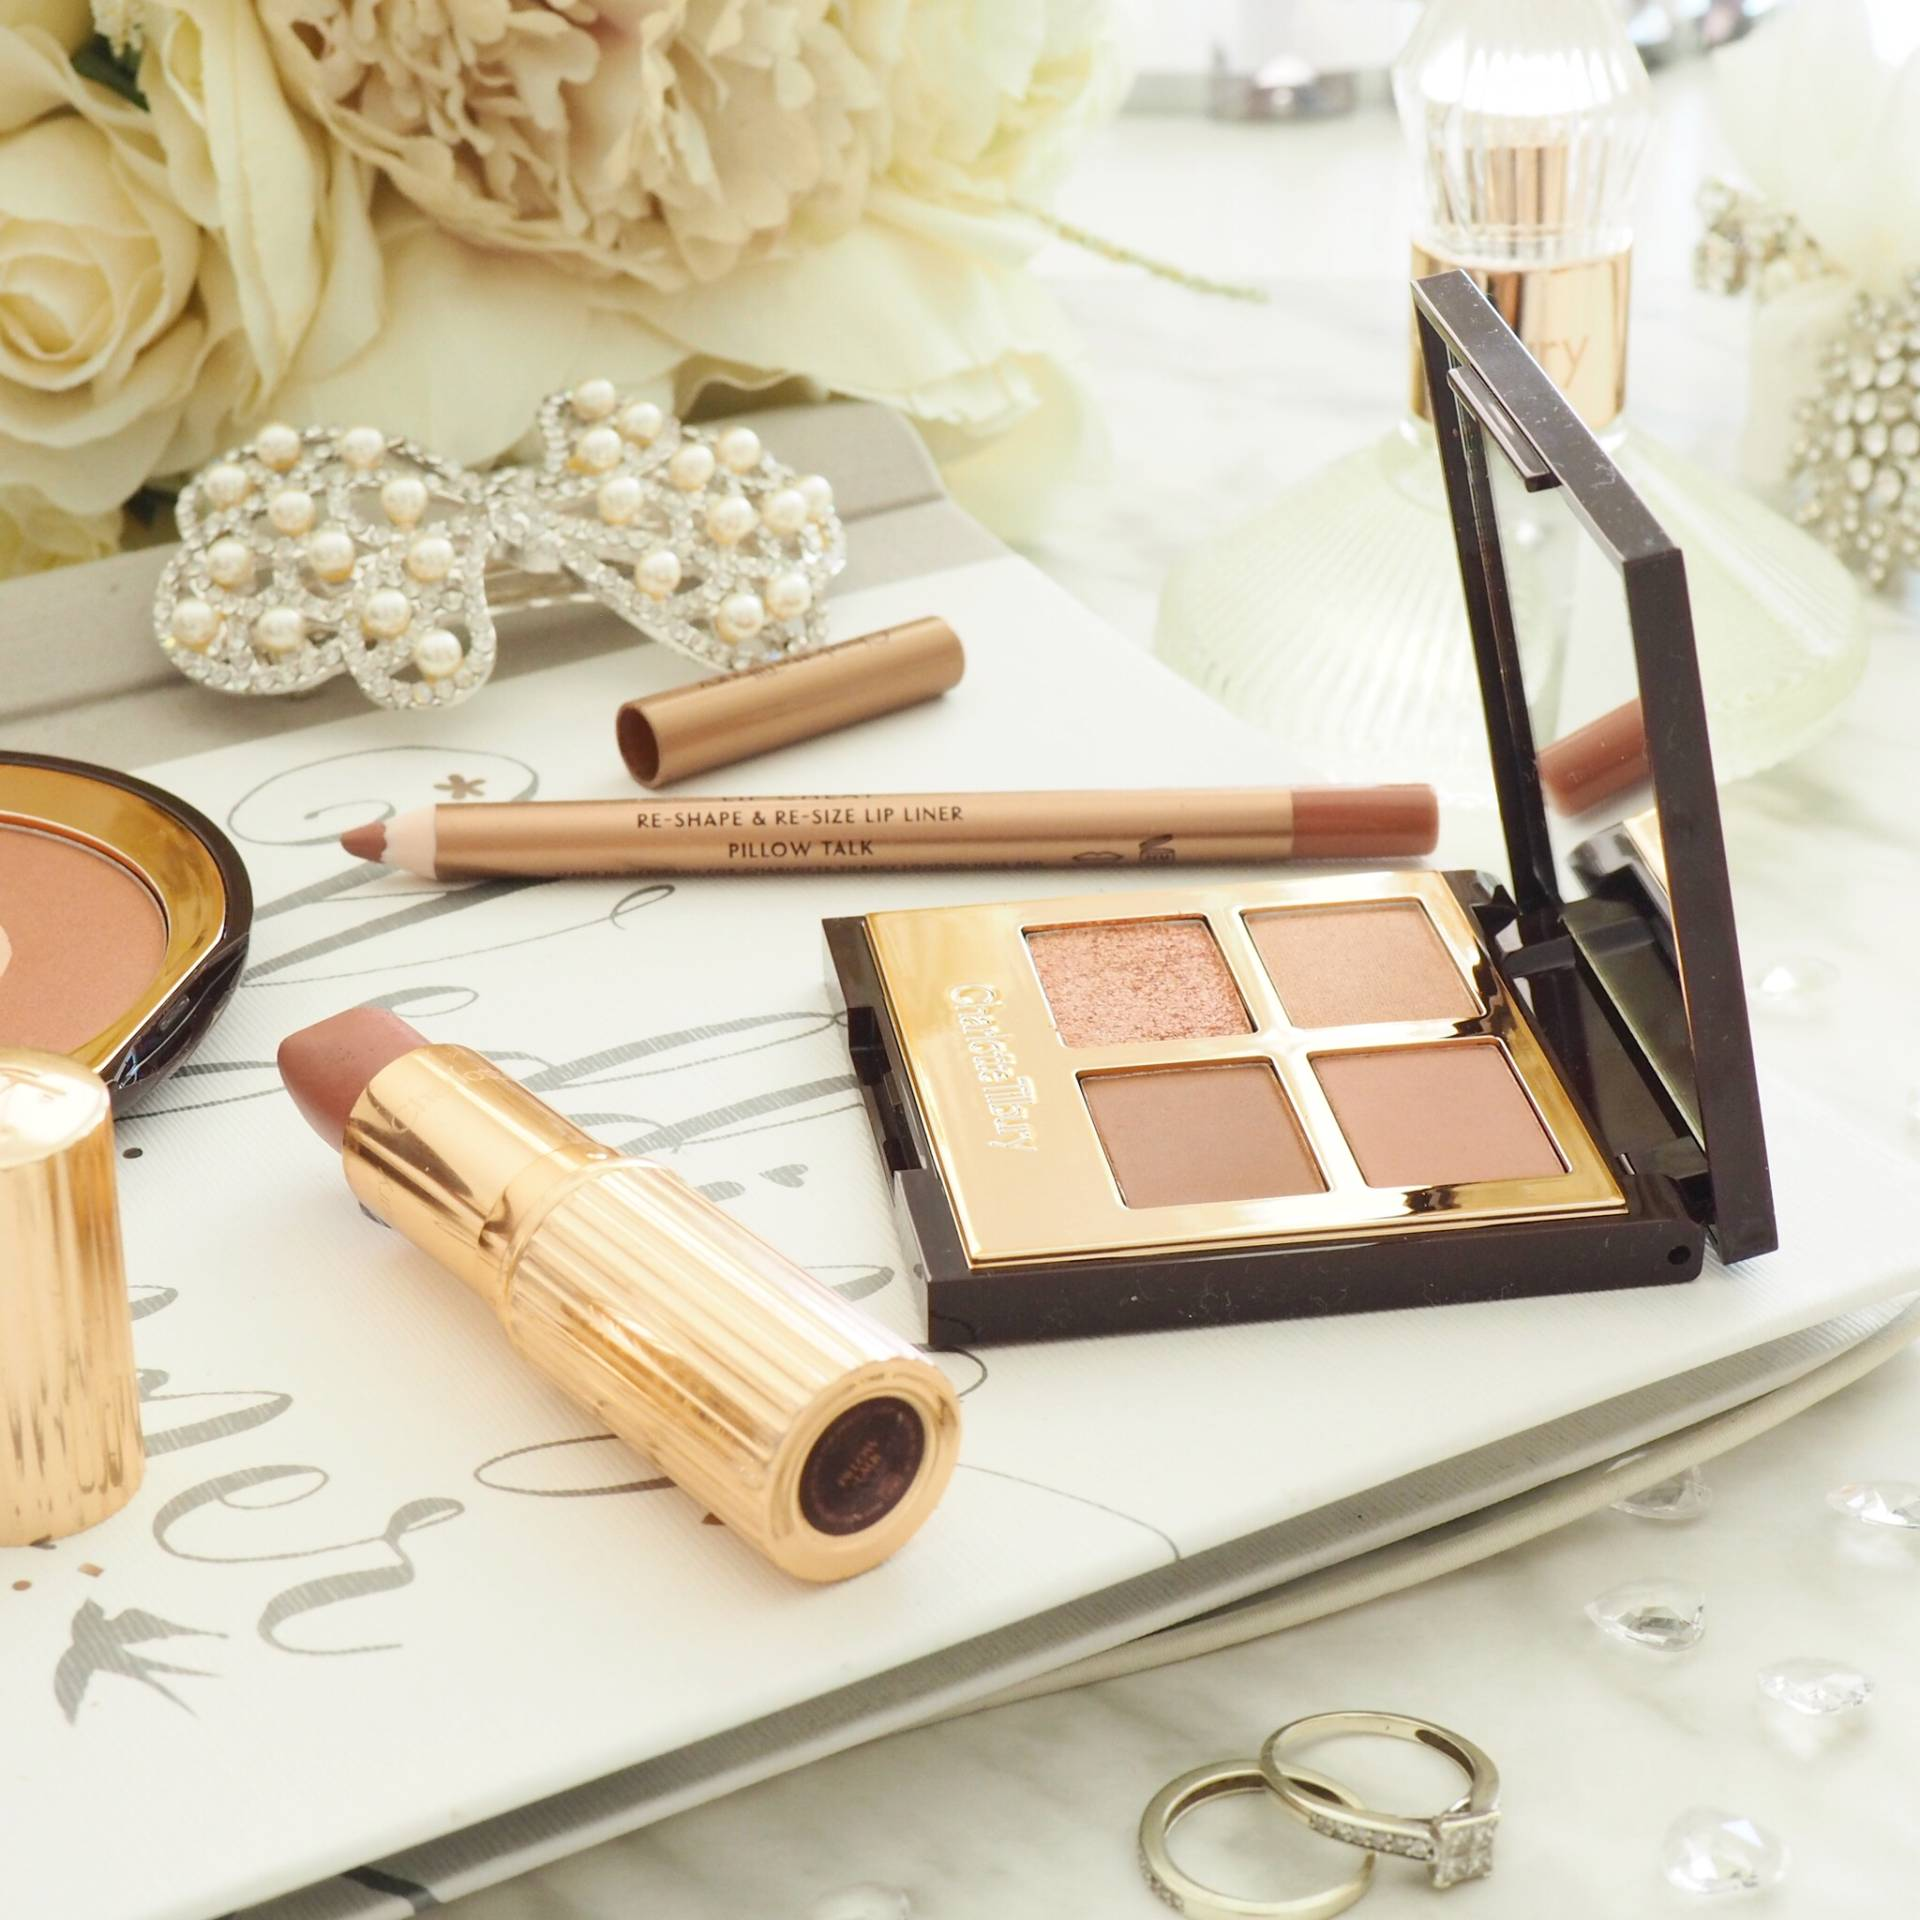 Charlotte-Tilbury-Pillow-Talk-Eyeshadow.